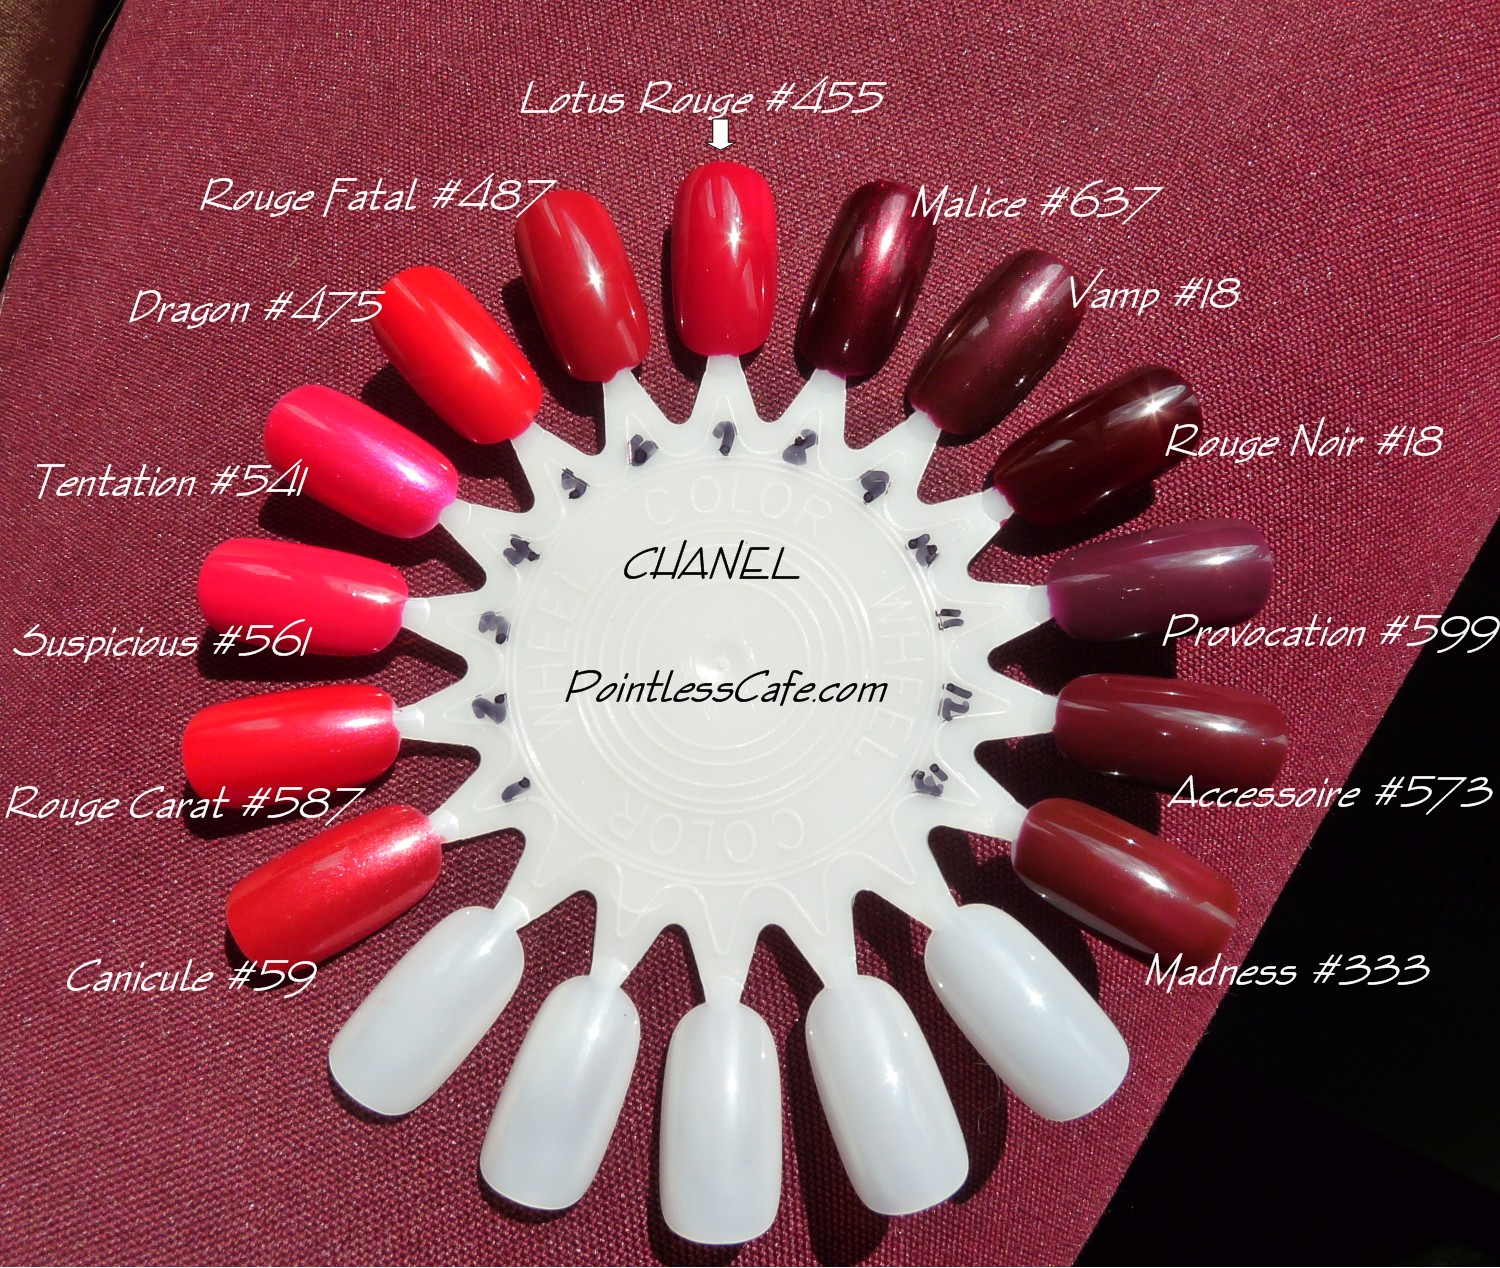 my favorite red and a chanel reds and vamps comparison